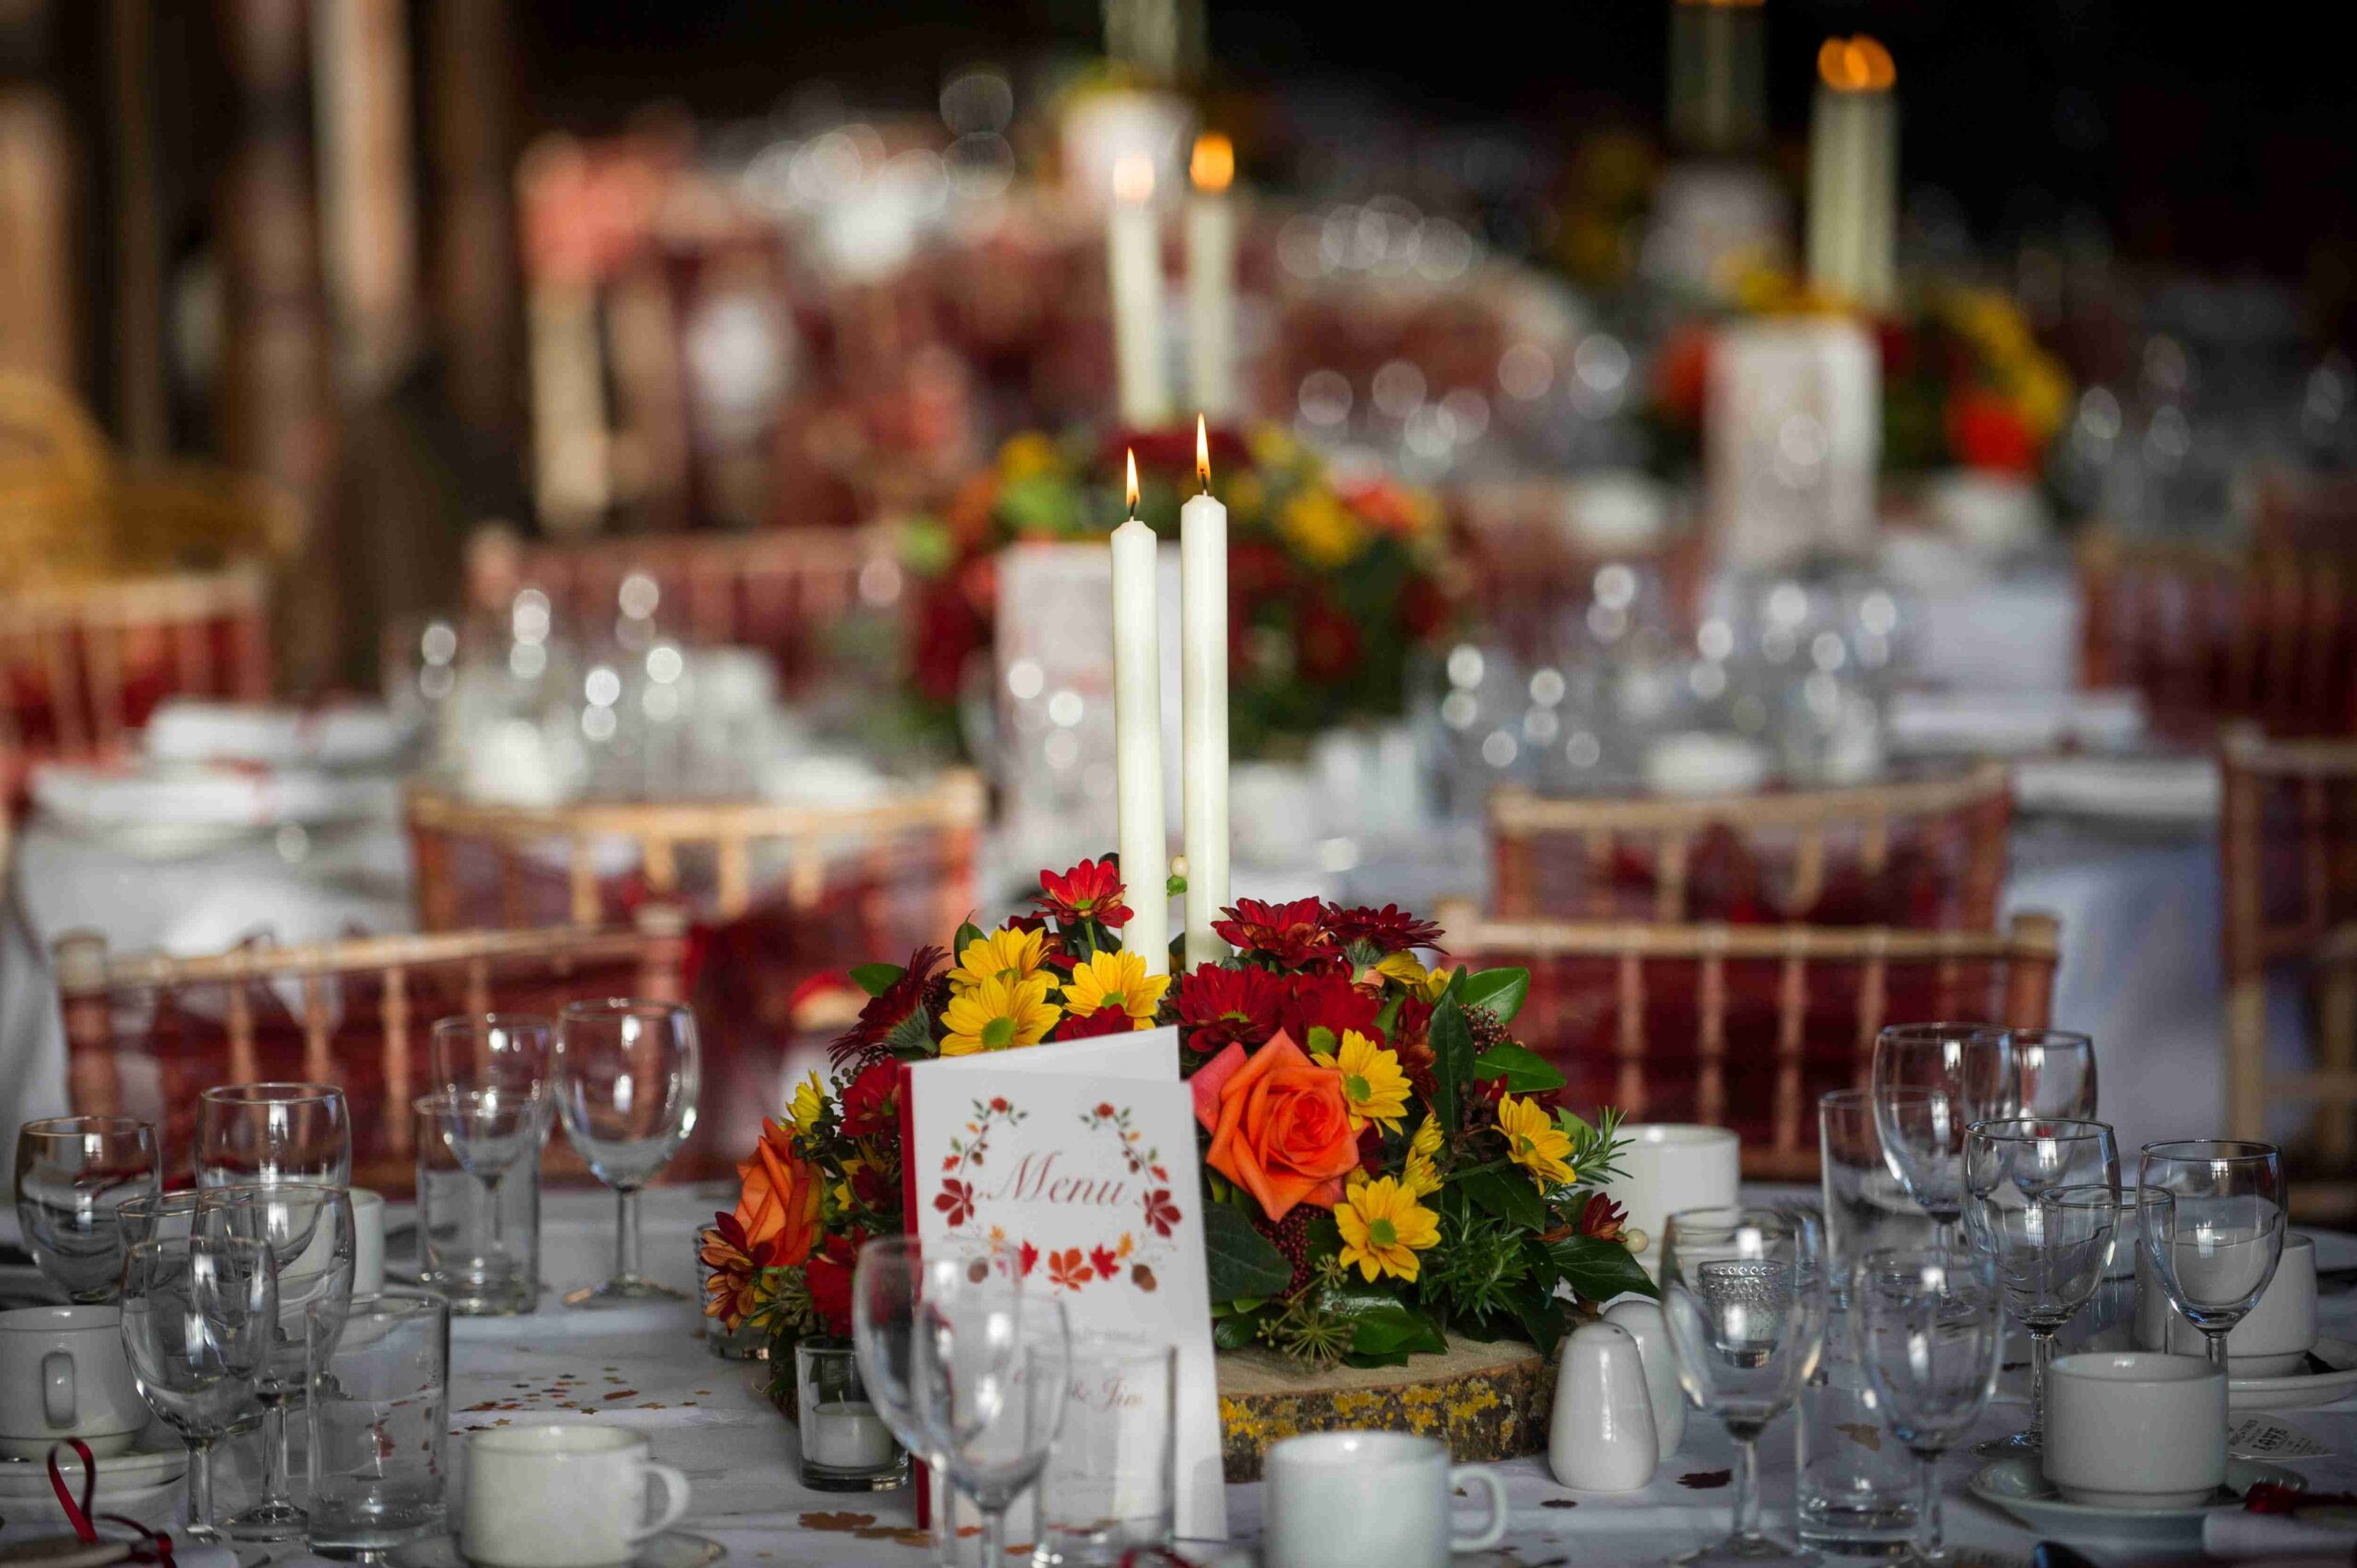 Wedding centrepiece with candles